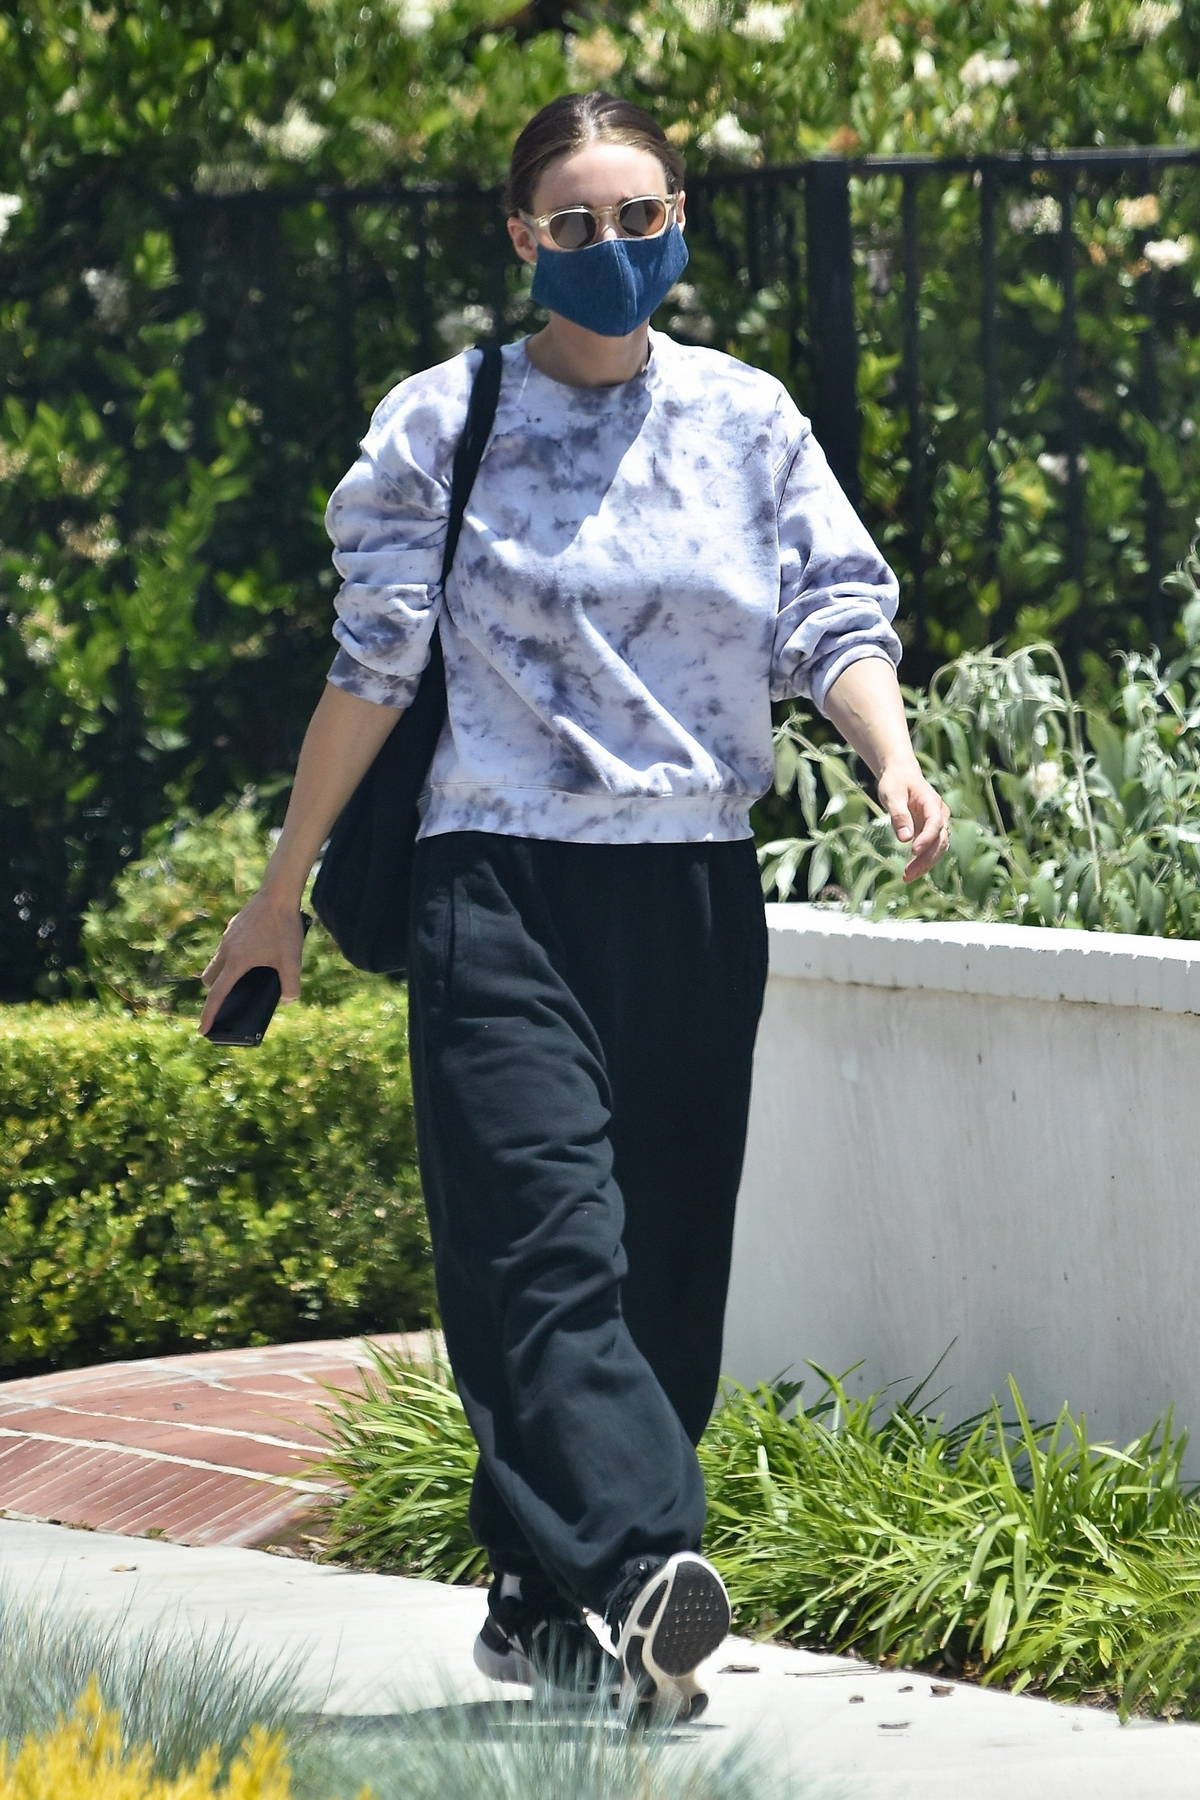 Rooney Mara wears a tie-dye sweatshirt and sweatpants for a spa day in Hollywood, California